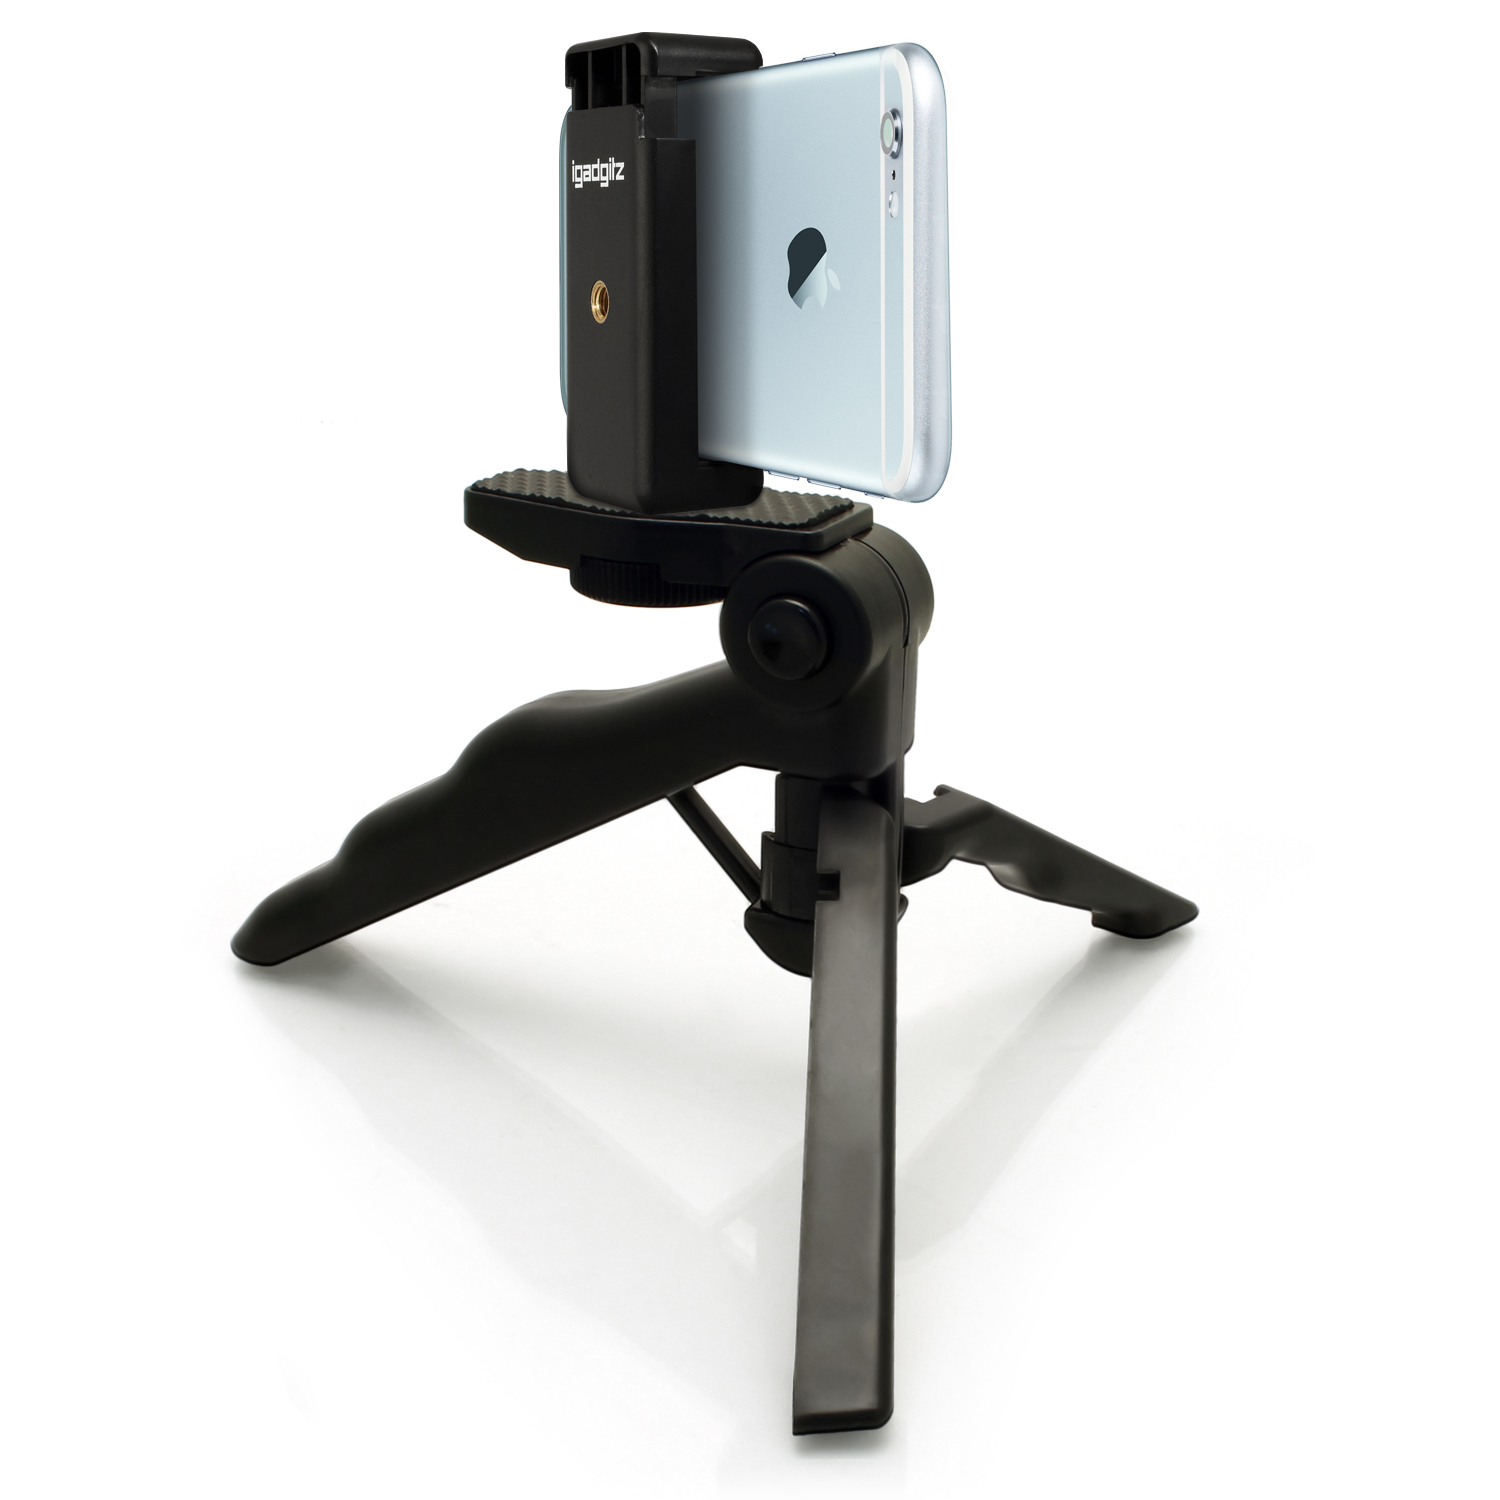 igadgitz 2 in 1 pistol grip stabilizer and mini table top stand tripod universal smartphone. Black Bedroom Furniture Sets. Home Design Ideas